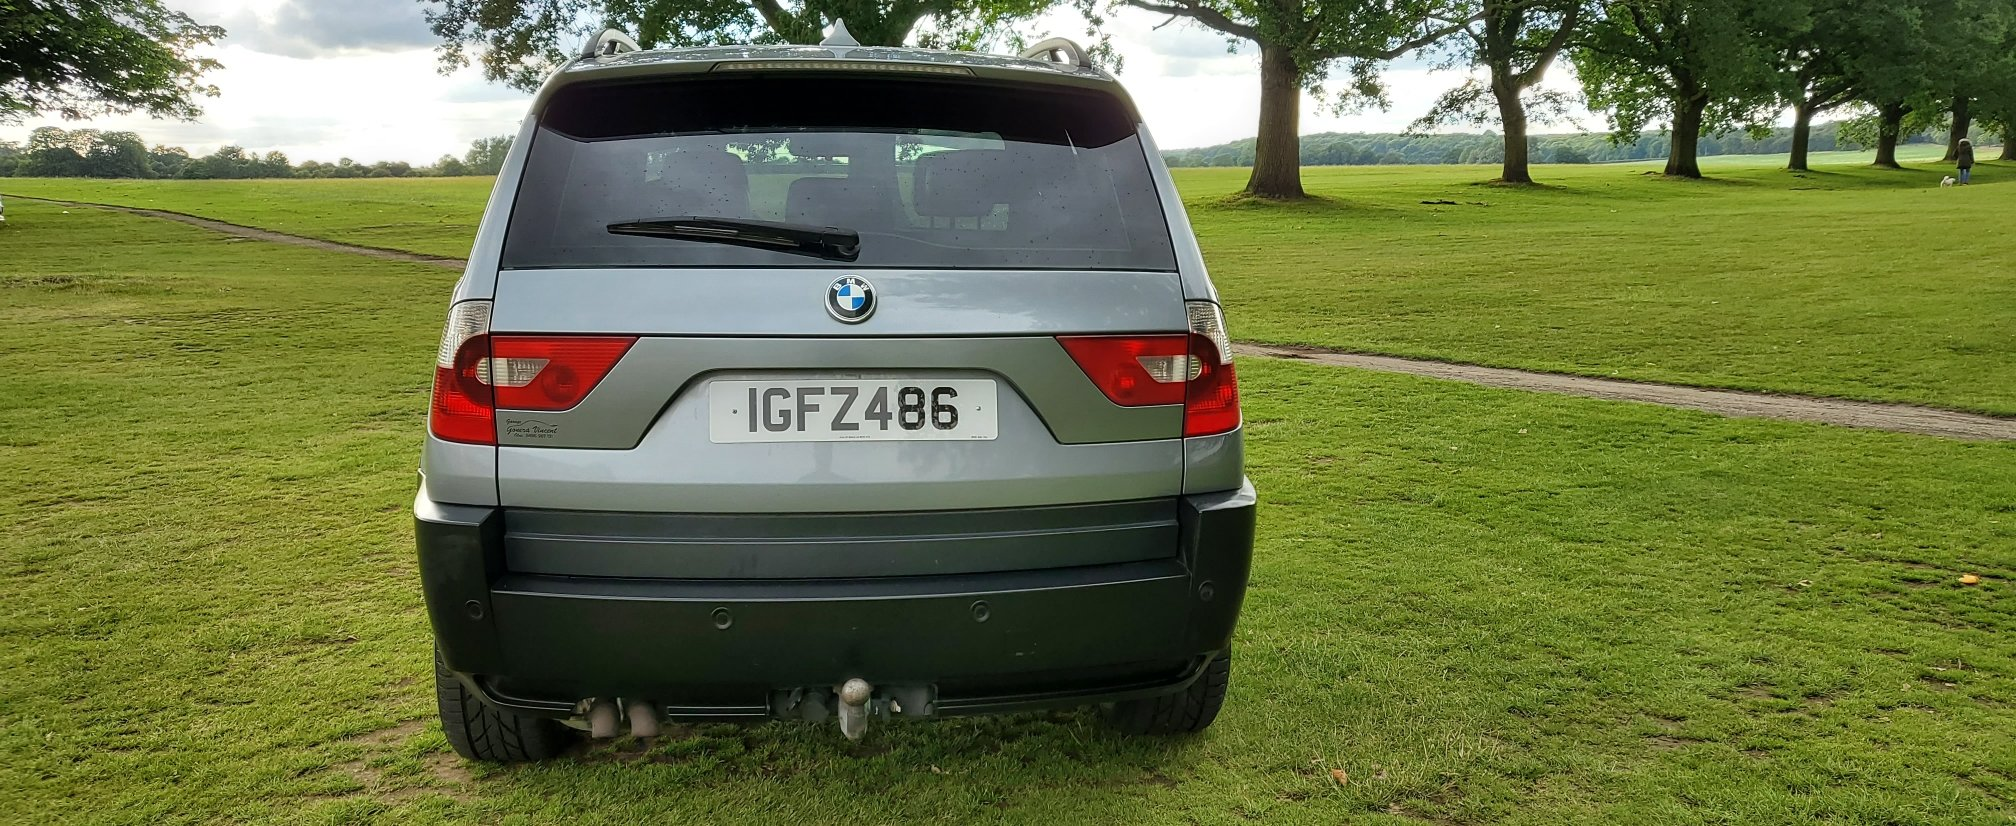 2004 LHD BMW X3, 3.0d Sport 5dr, Auto, Turbo,LEFT HAND DRIVE For Sale (picture 4 of 6)